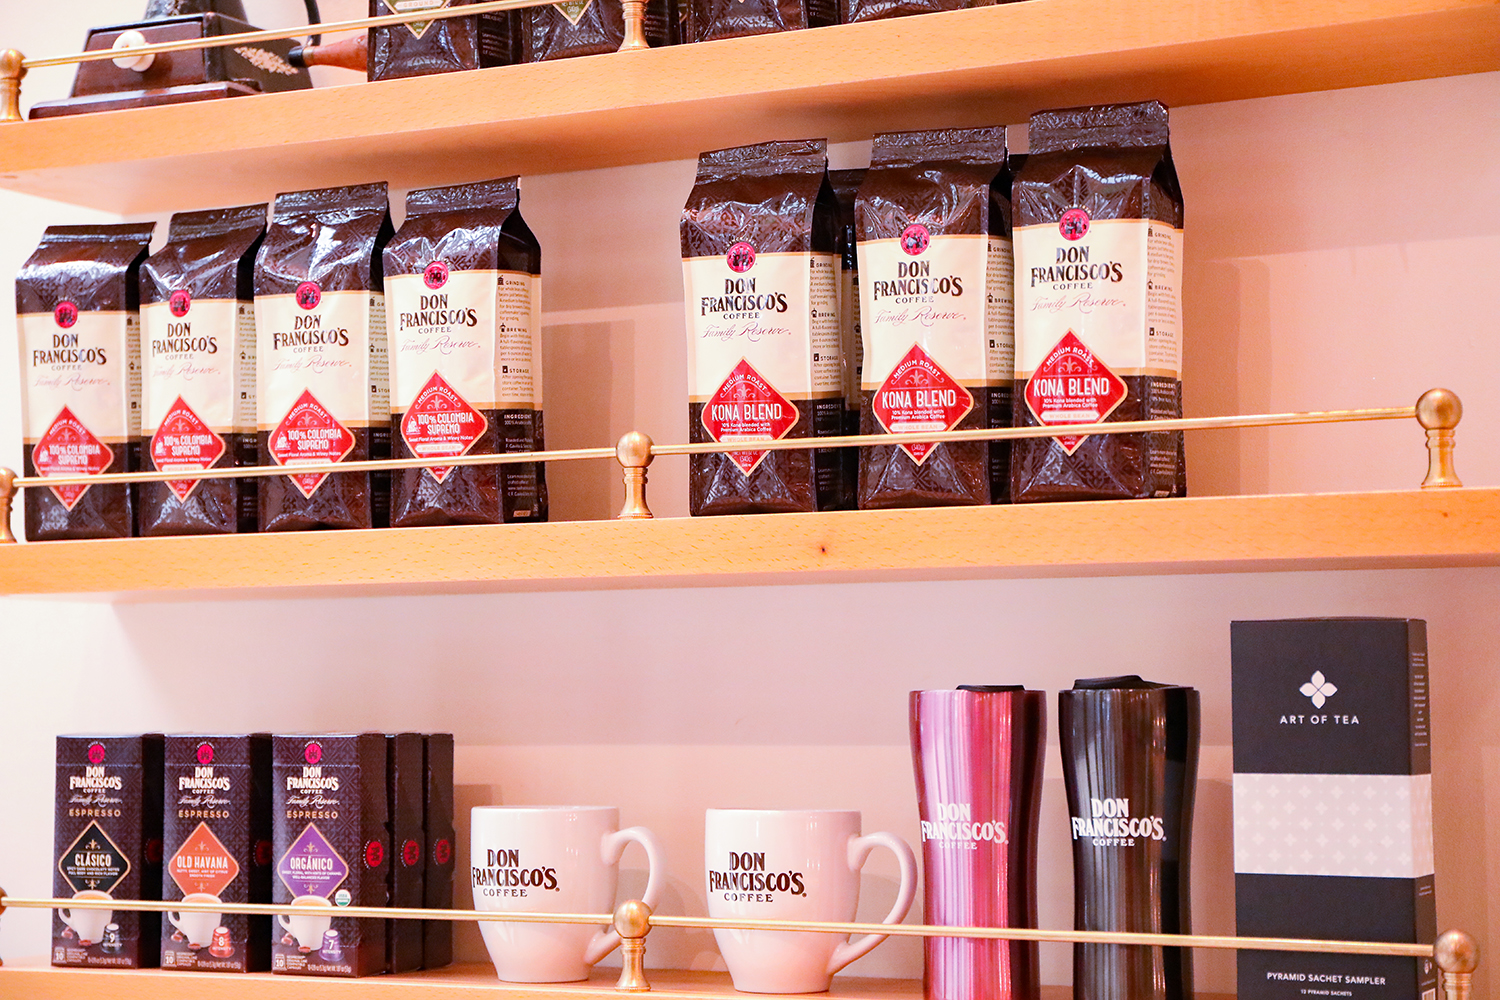 Looking for a great cup of coffee? This behind the scenes from the Don Francisco headquarters and visit to their cafe in Los Angeles is AMAZING!